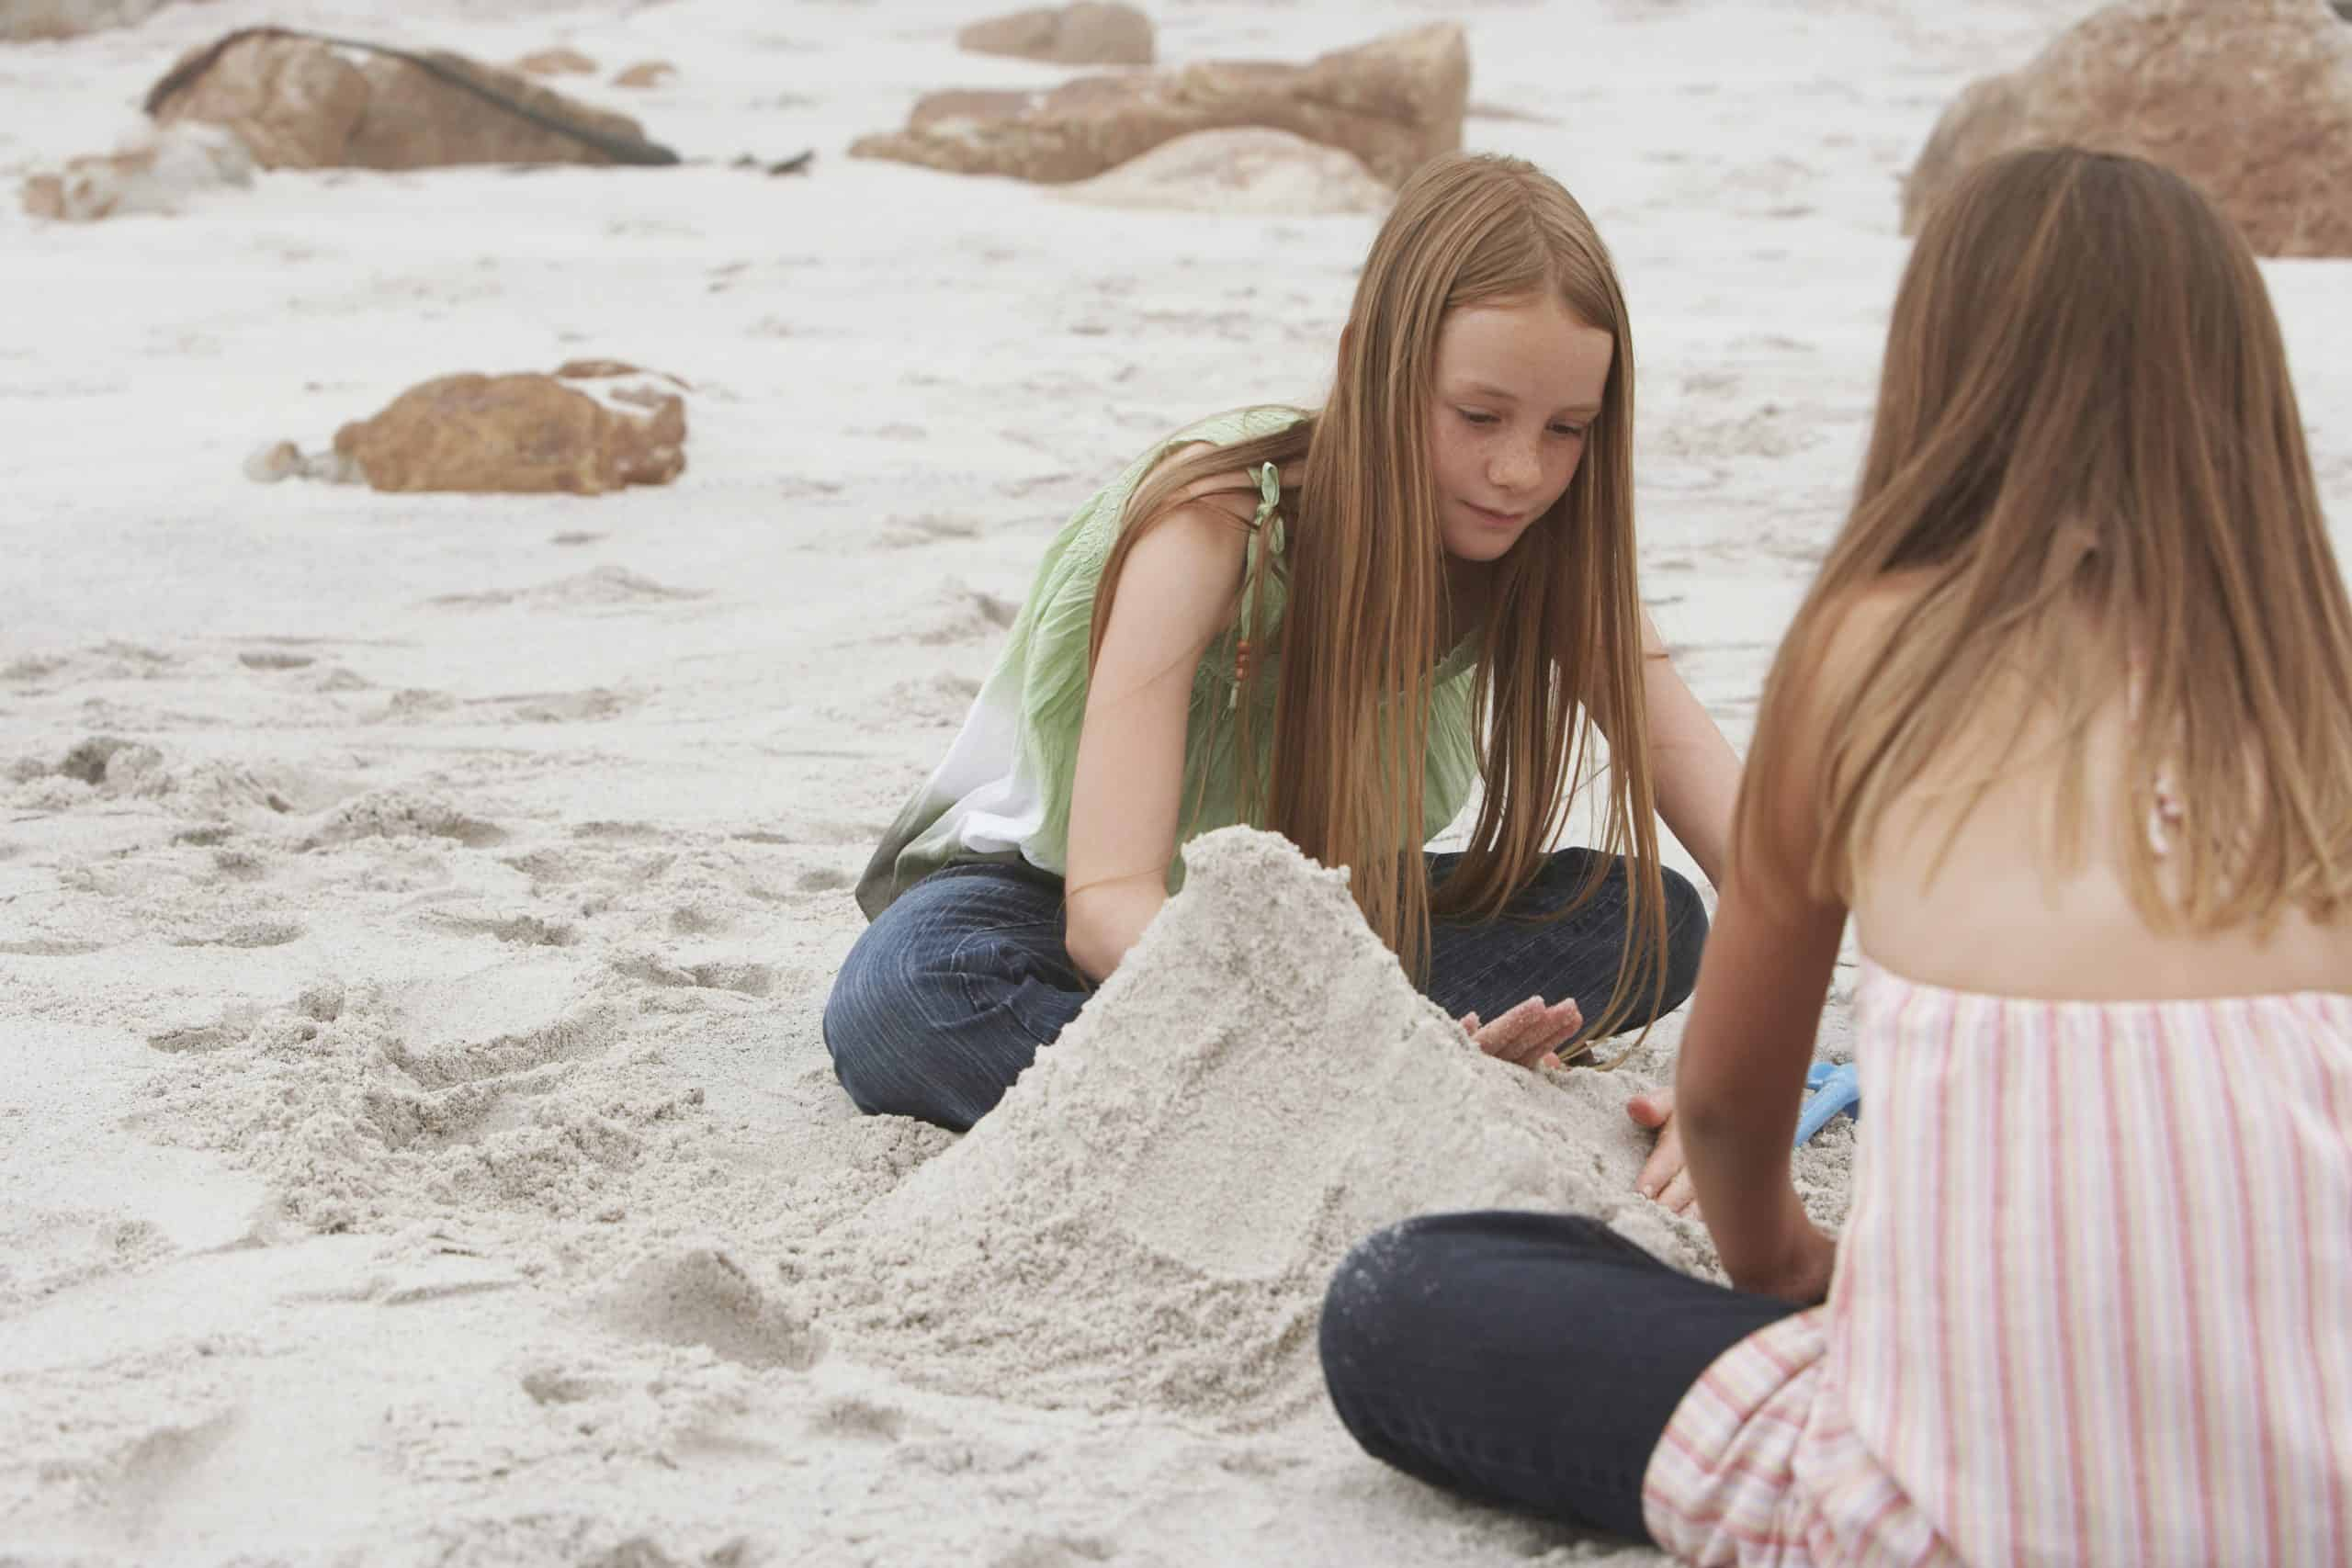 two young teens playing in the sand